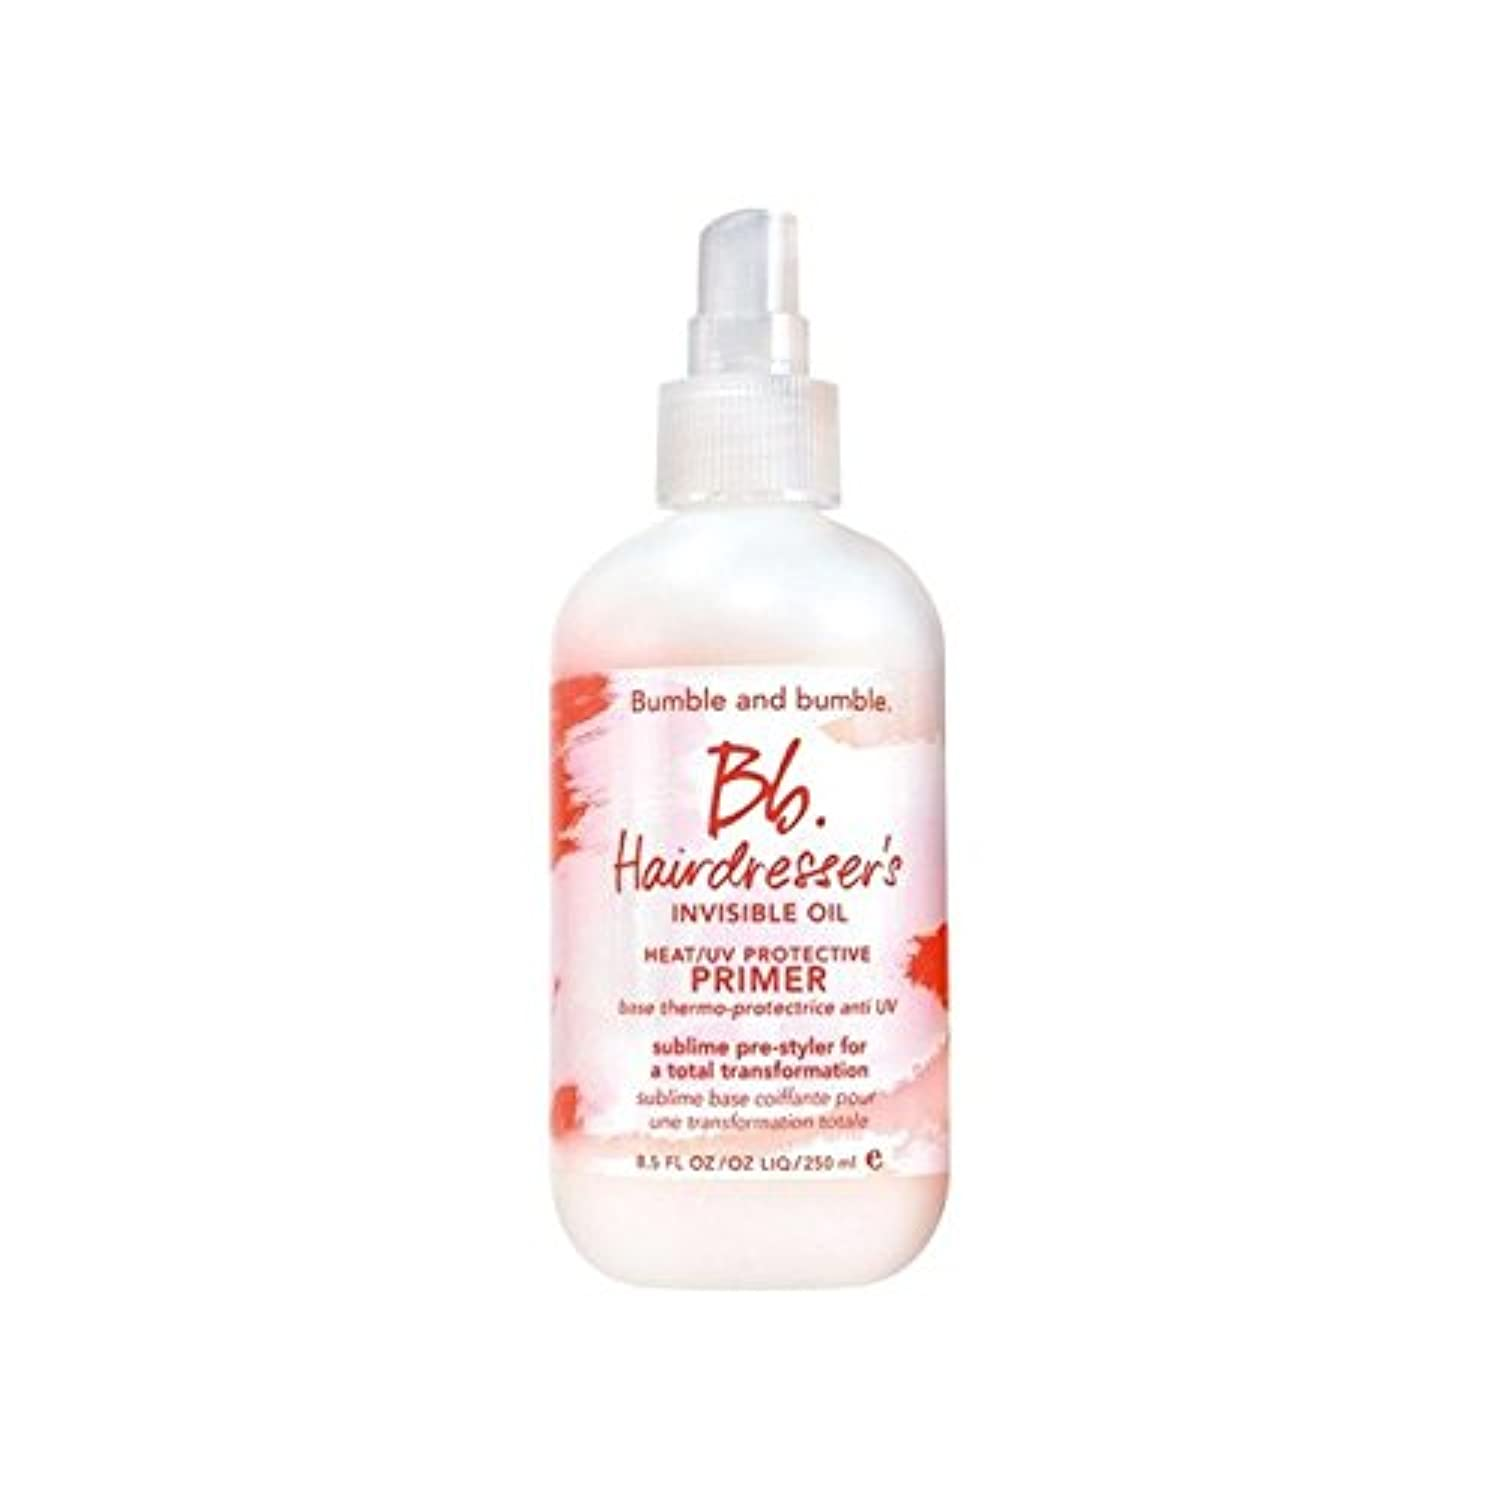 Bumble & Bumble Hairdressers Invisible Oil Heat/Uv Protective Primer (250ml) - 美容見えないオイル熱/ 保護プライマー(250ミリリットル)...